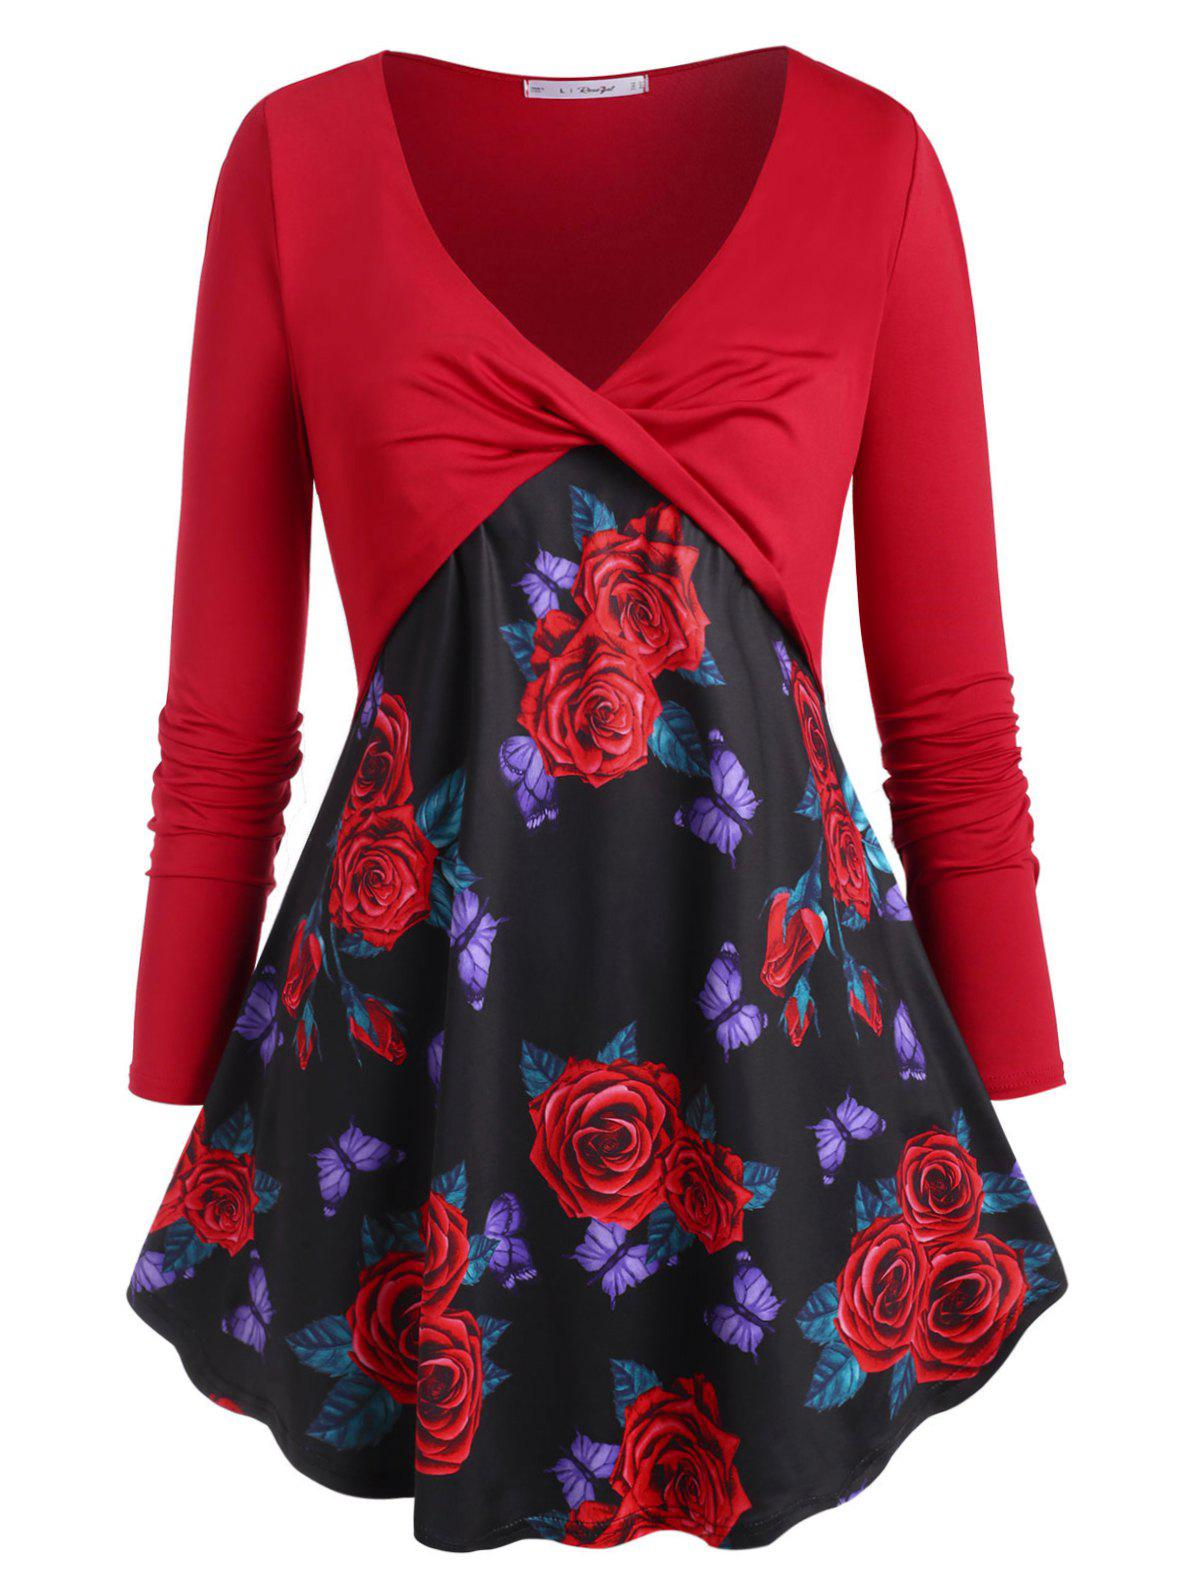 Rose Butterfly Twisted Front Plus Size Top - RED 4X